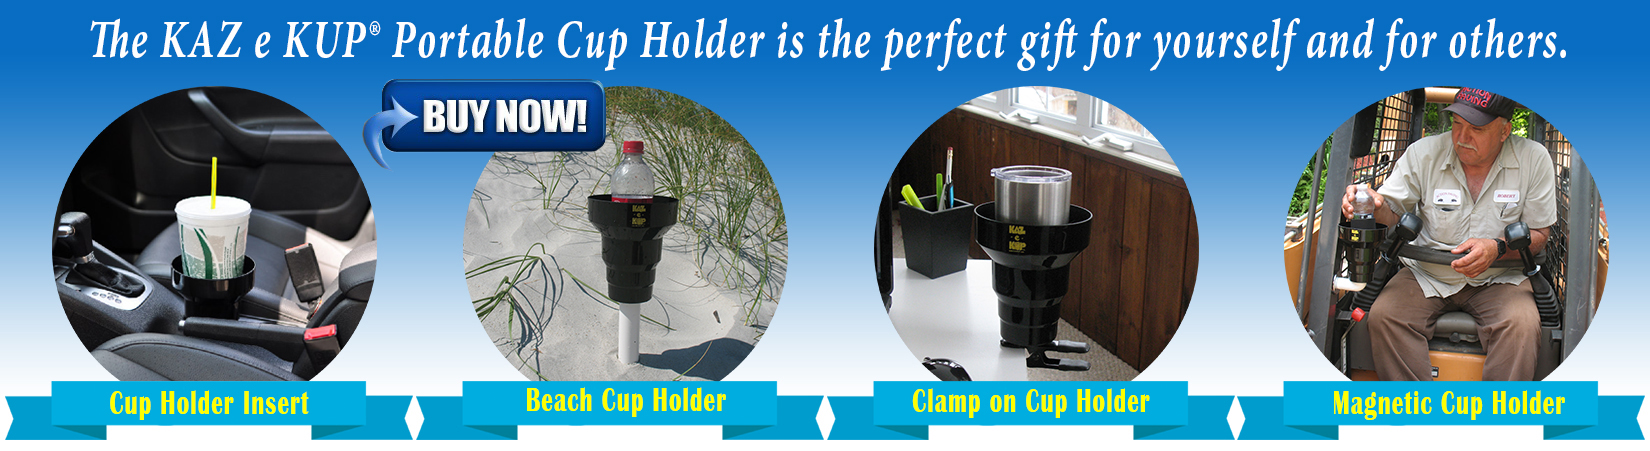 Ultimate cup holder,kazekup cup holder,magnetic cup holder,clip on cup holder,beach cup holder